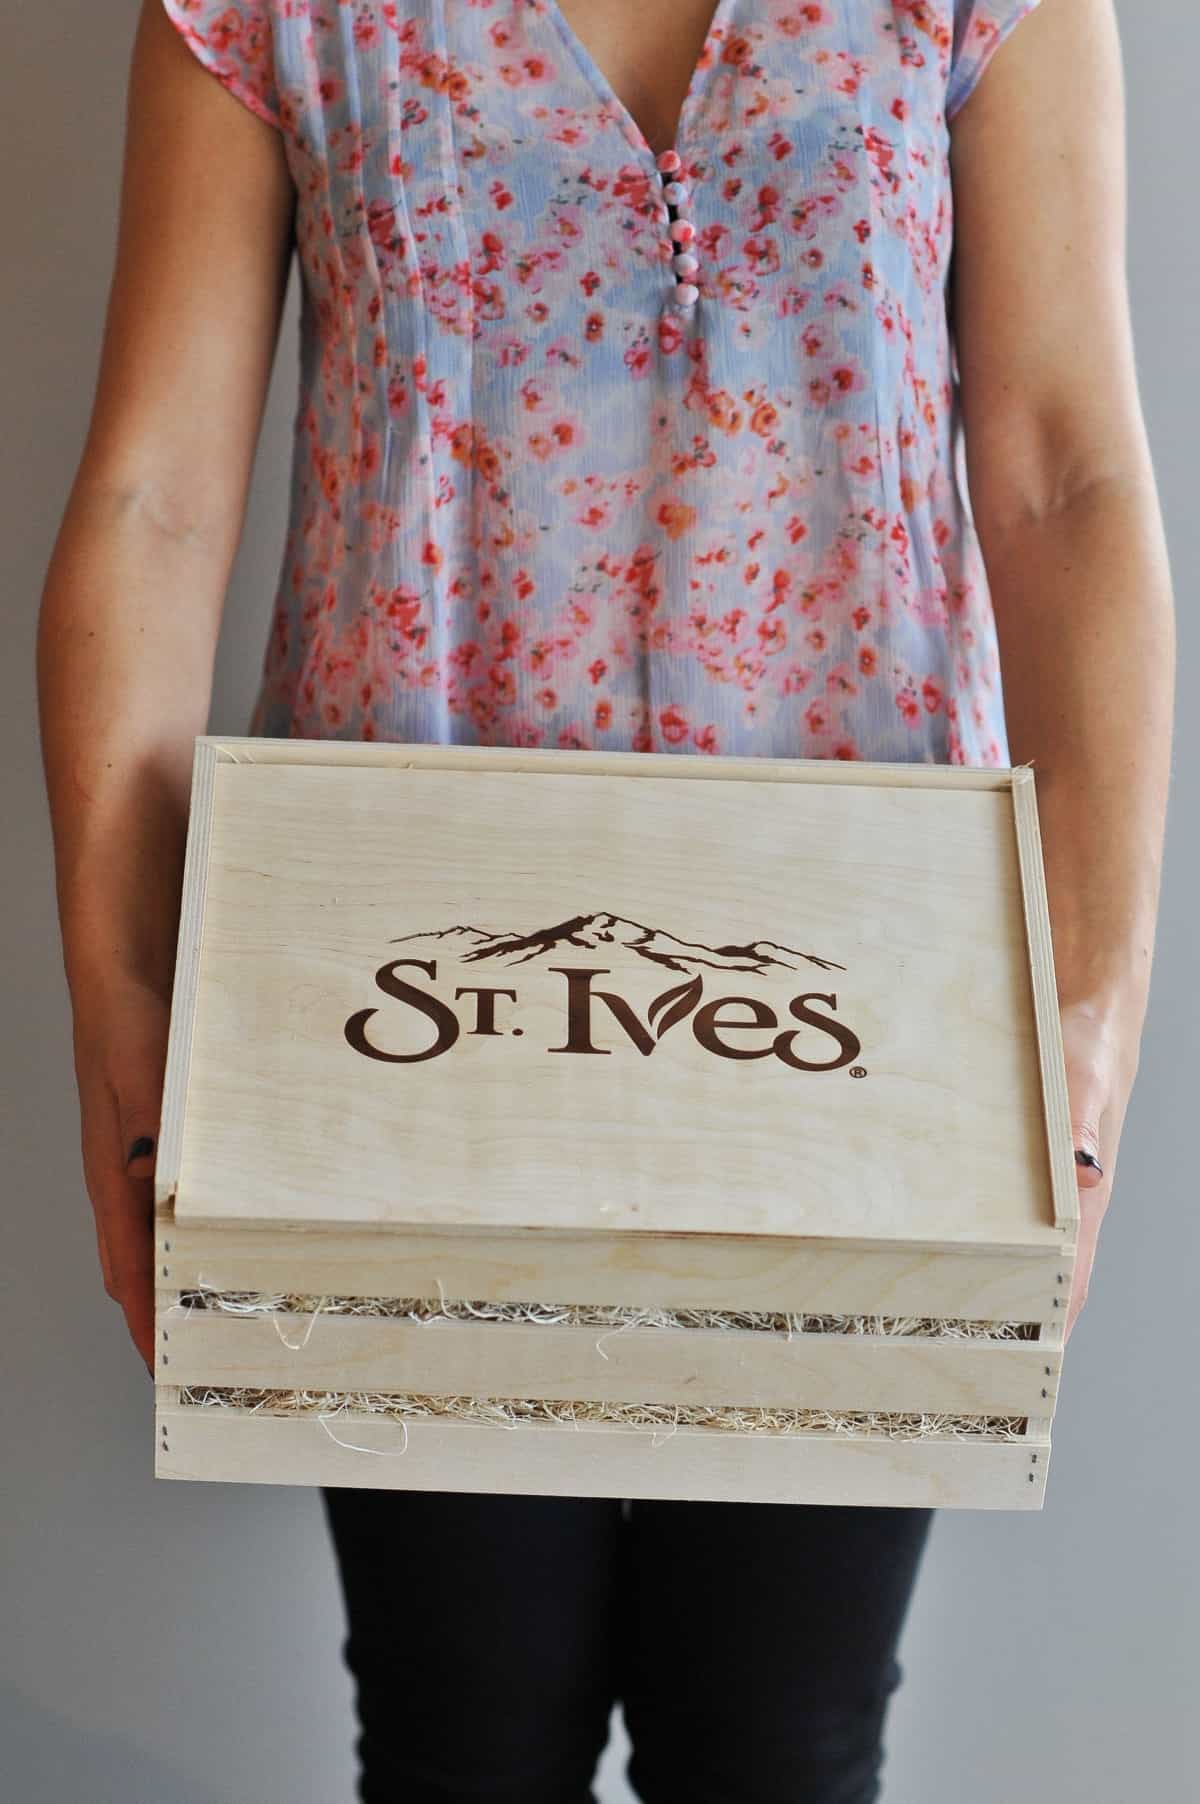 St. Ives pear and soy body wash via @mystylevita